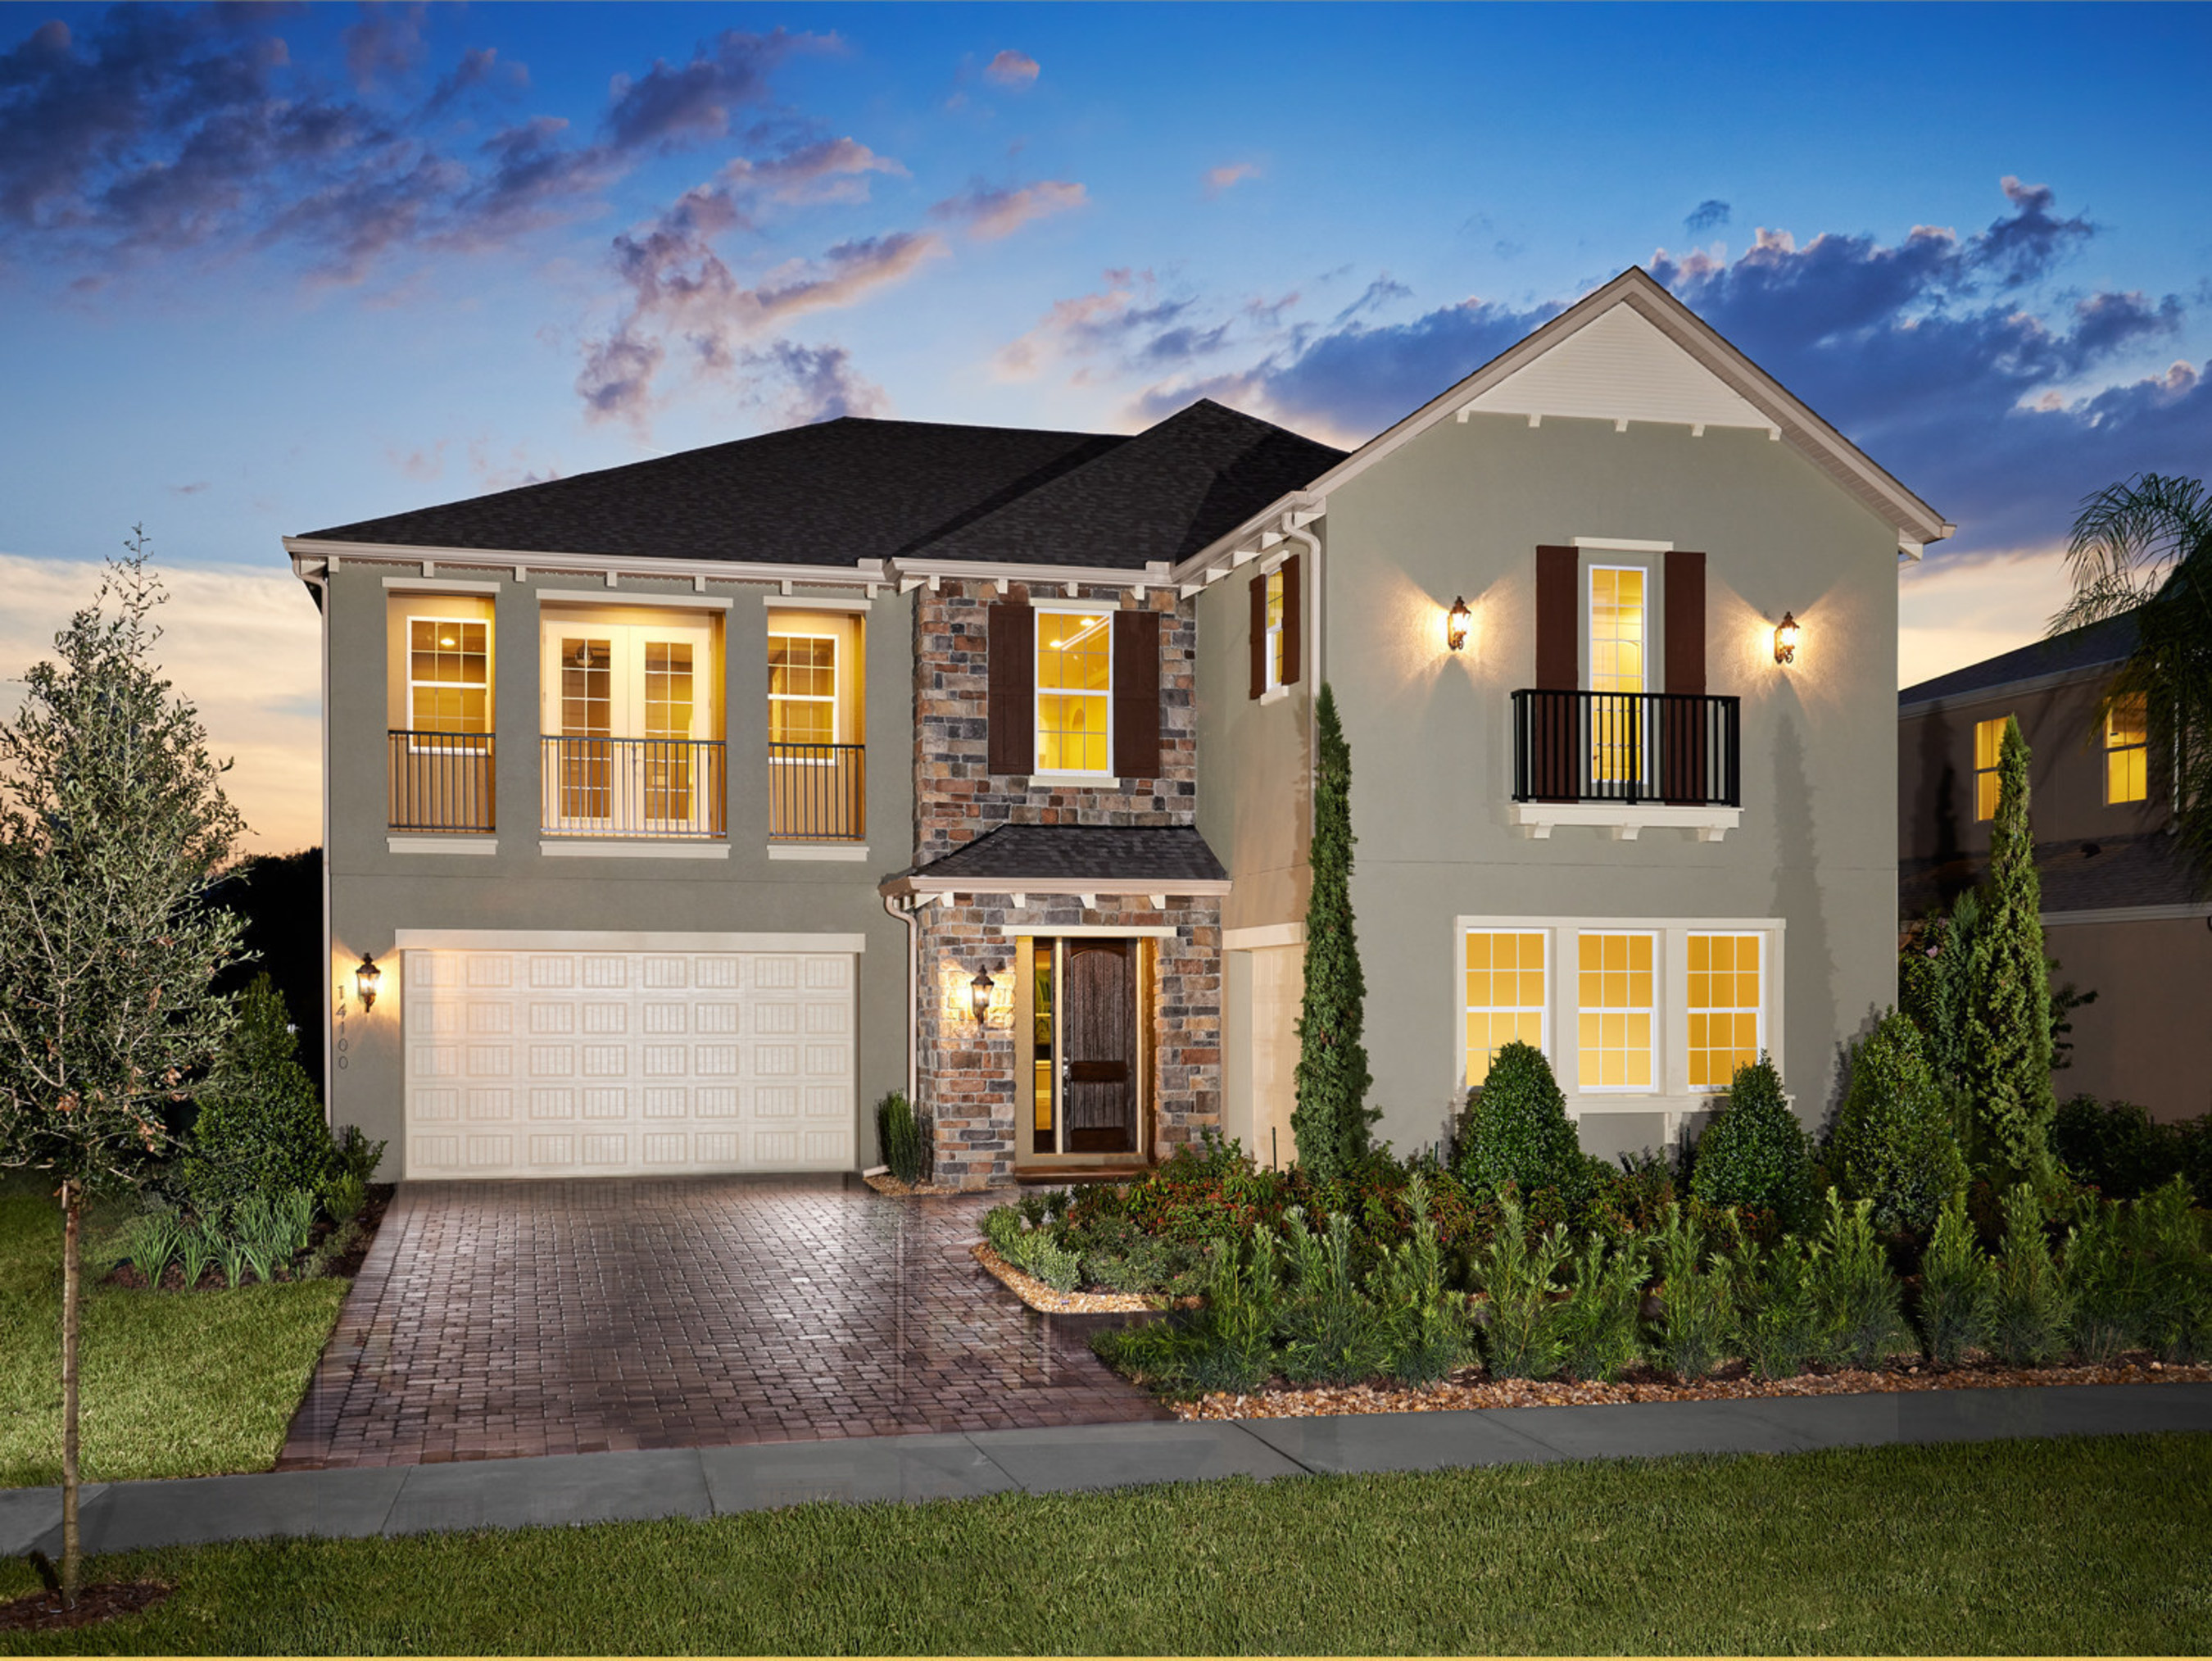 Standard pacific homes debuts new homes in winter garden for Family home builders